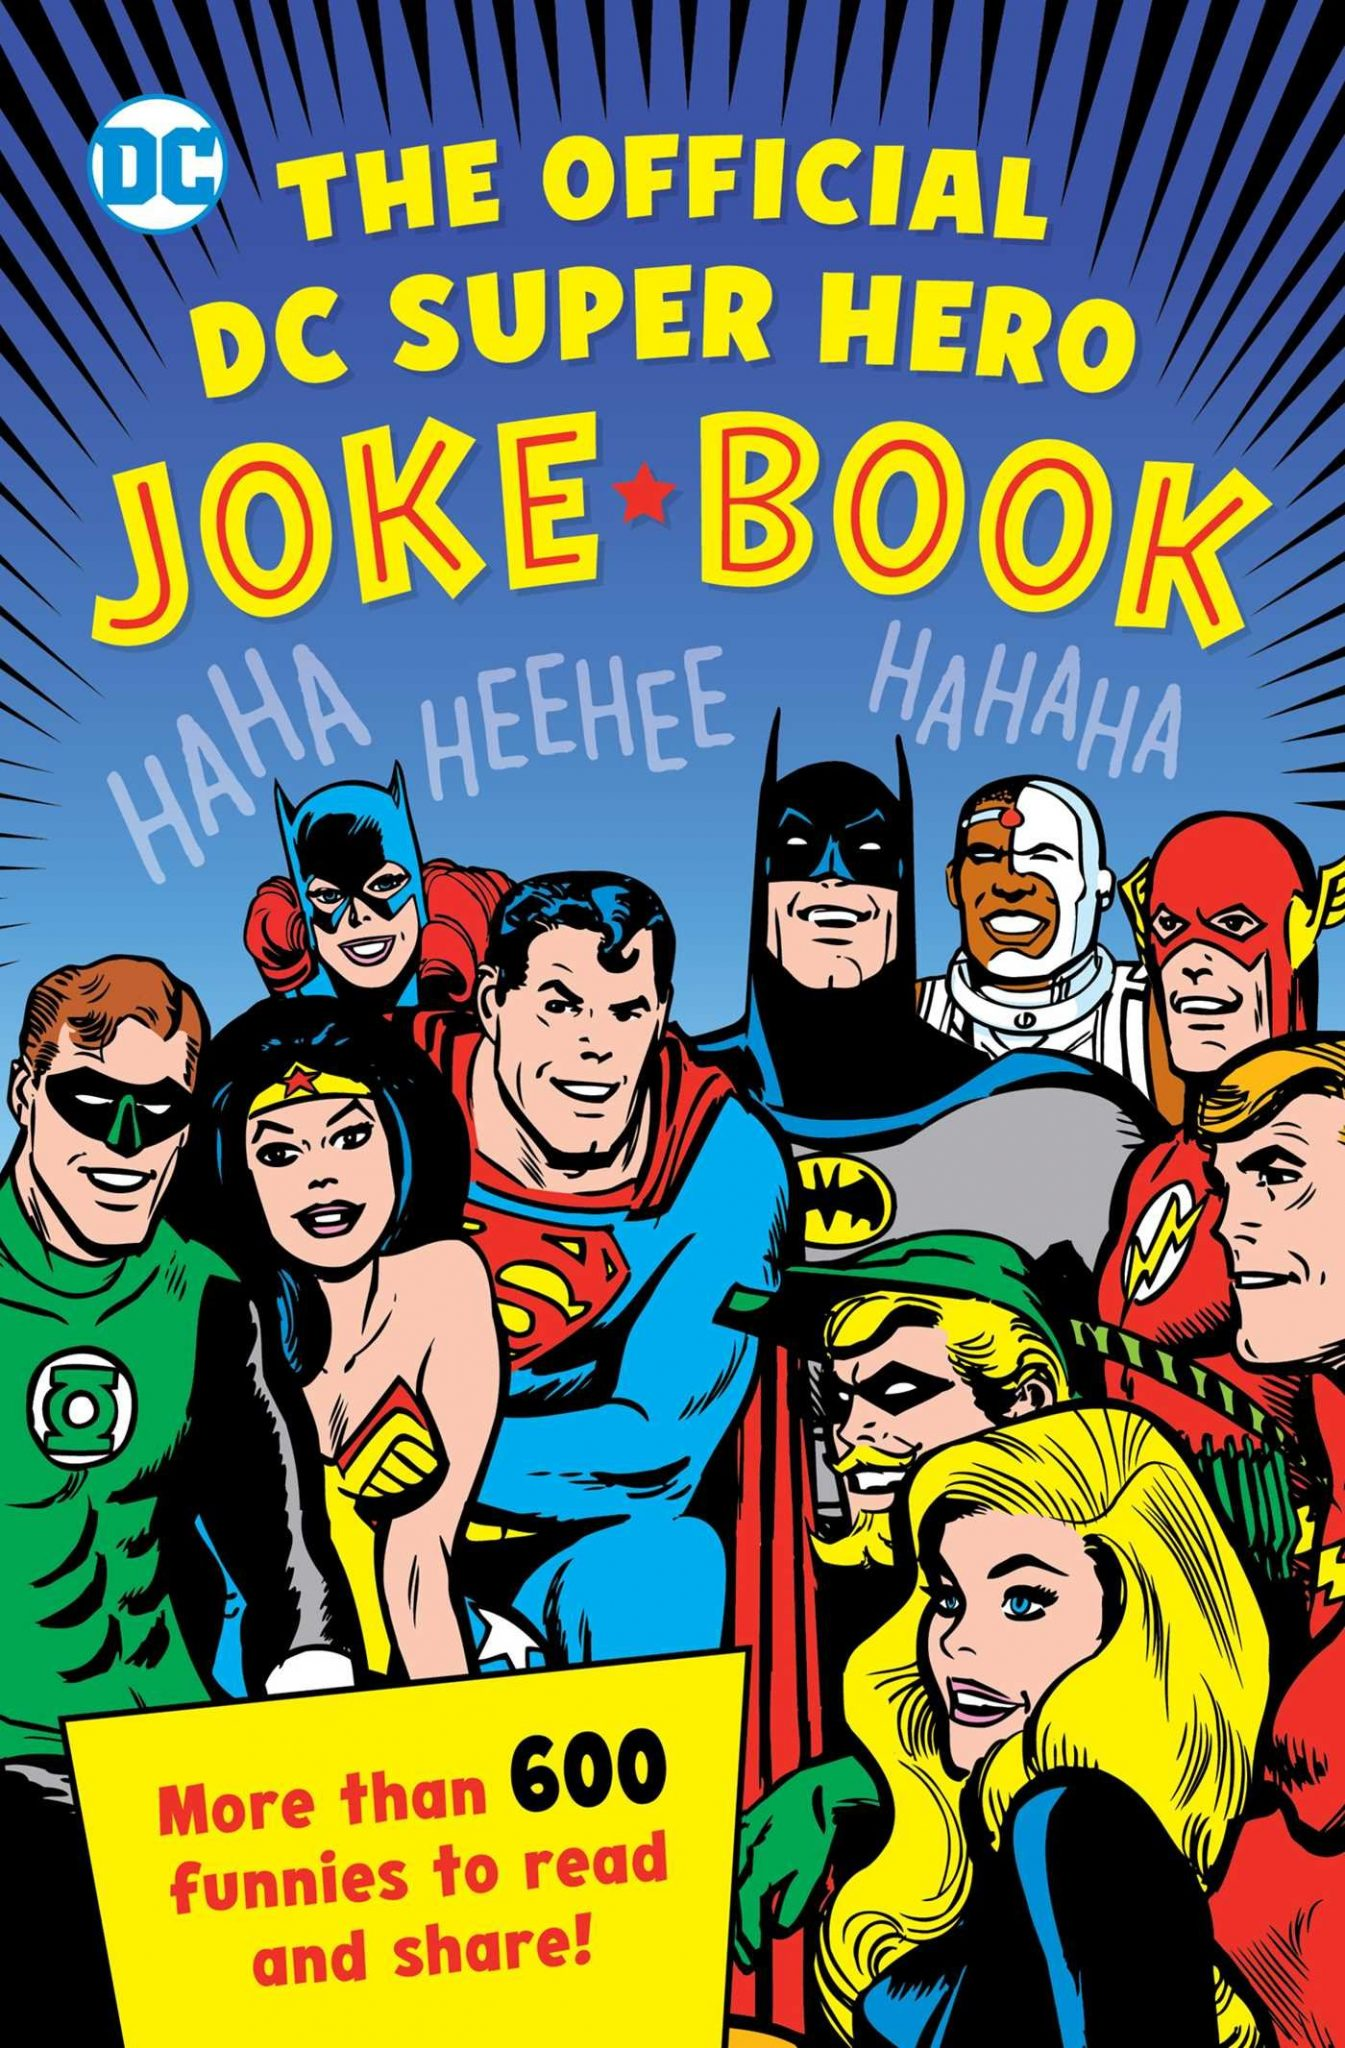 The Official DC Super Hero Joke Book features dad jokes galore